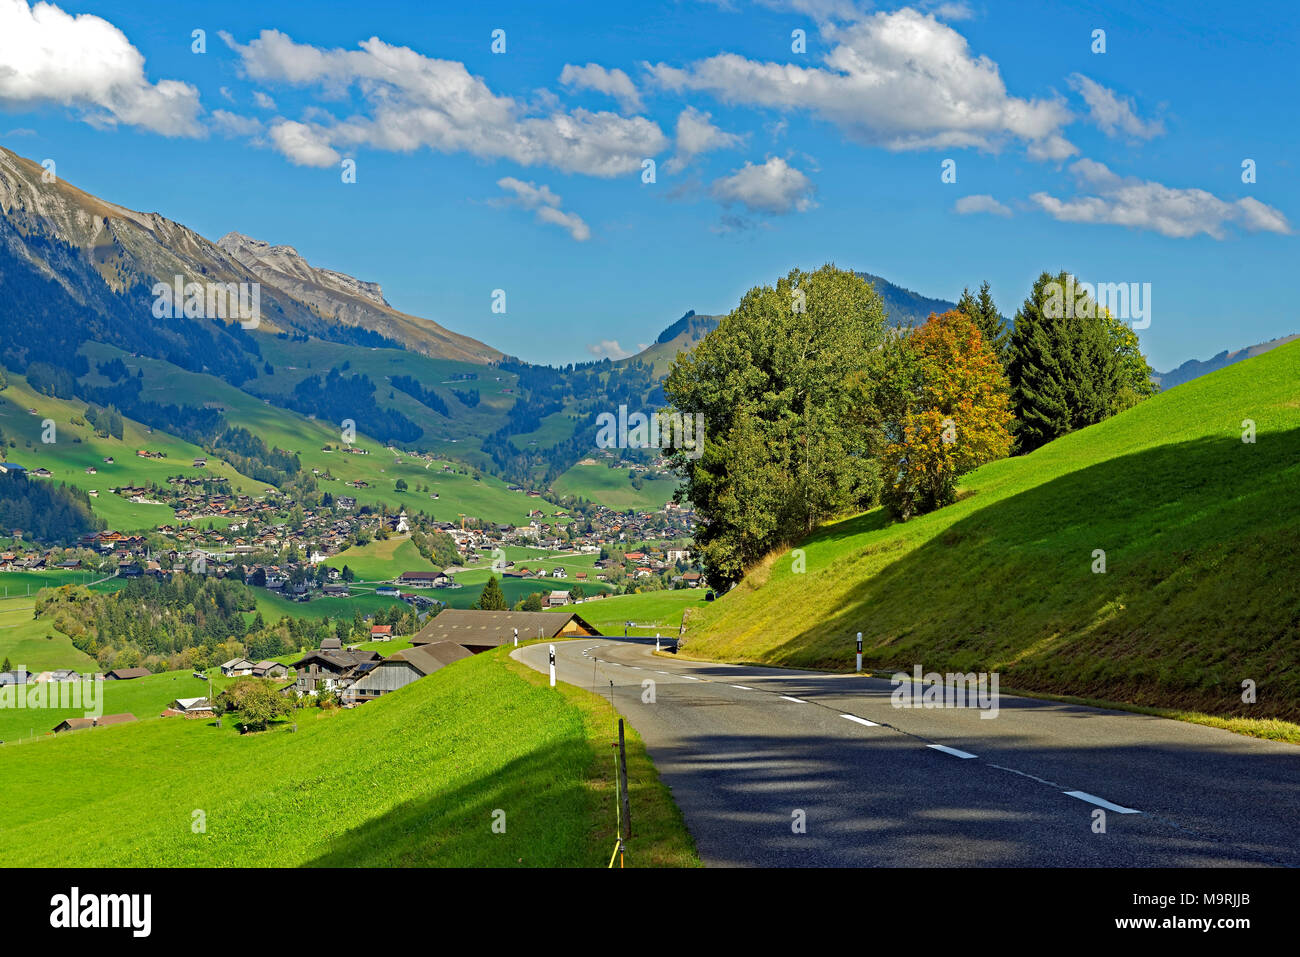 Europe, Switzerland, Vaud (Vaud), Château-d'Oex, route of the Mosses, nightmare scenery, place of interest, tourism, traditionally, trees, wood, plant Stock Photo